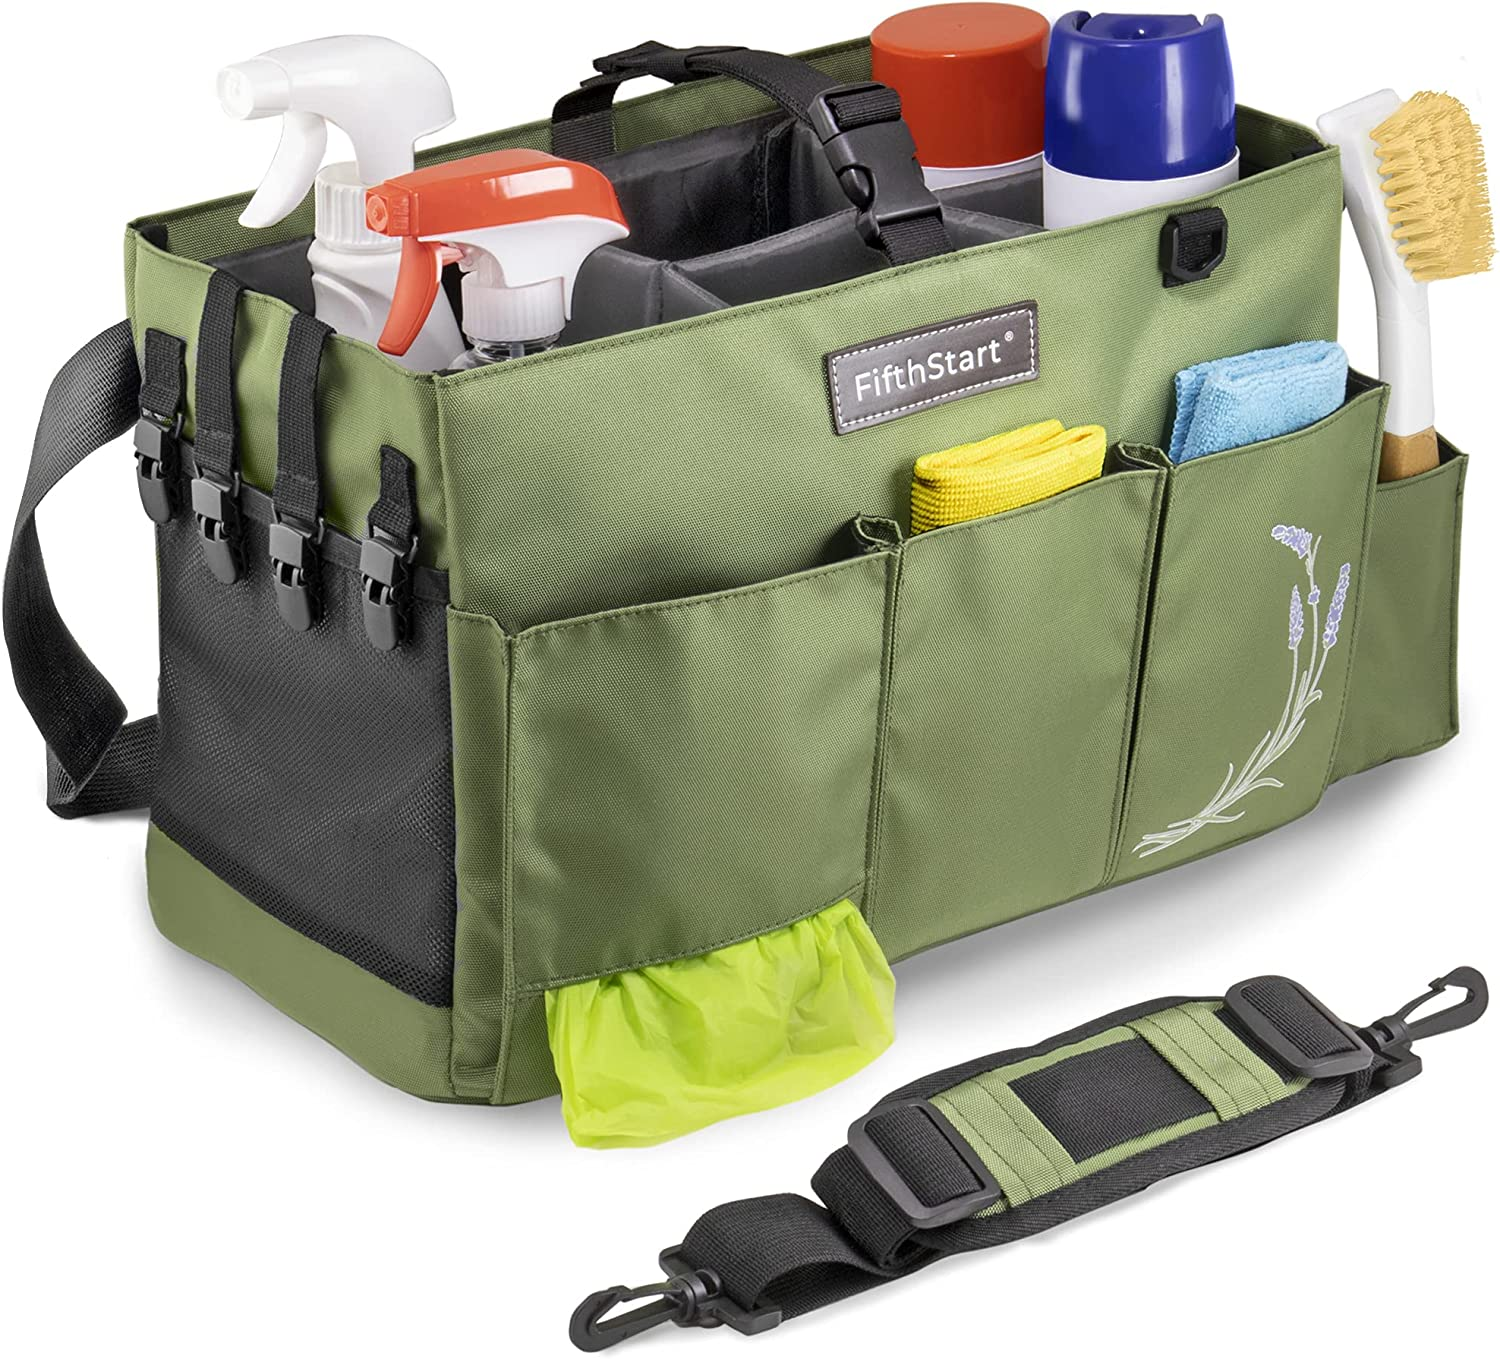 FifthStart Large Wearable Max 58% OFF Cleaning Caddy Super beauty product restock quality top with Handle Organ